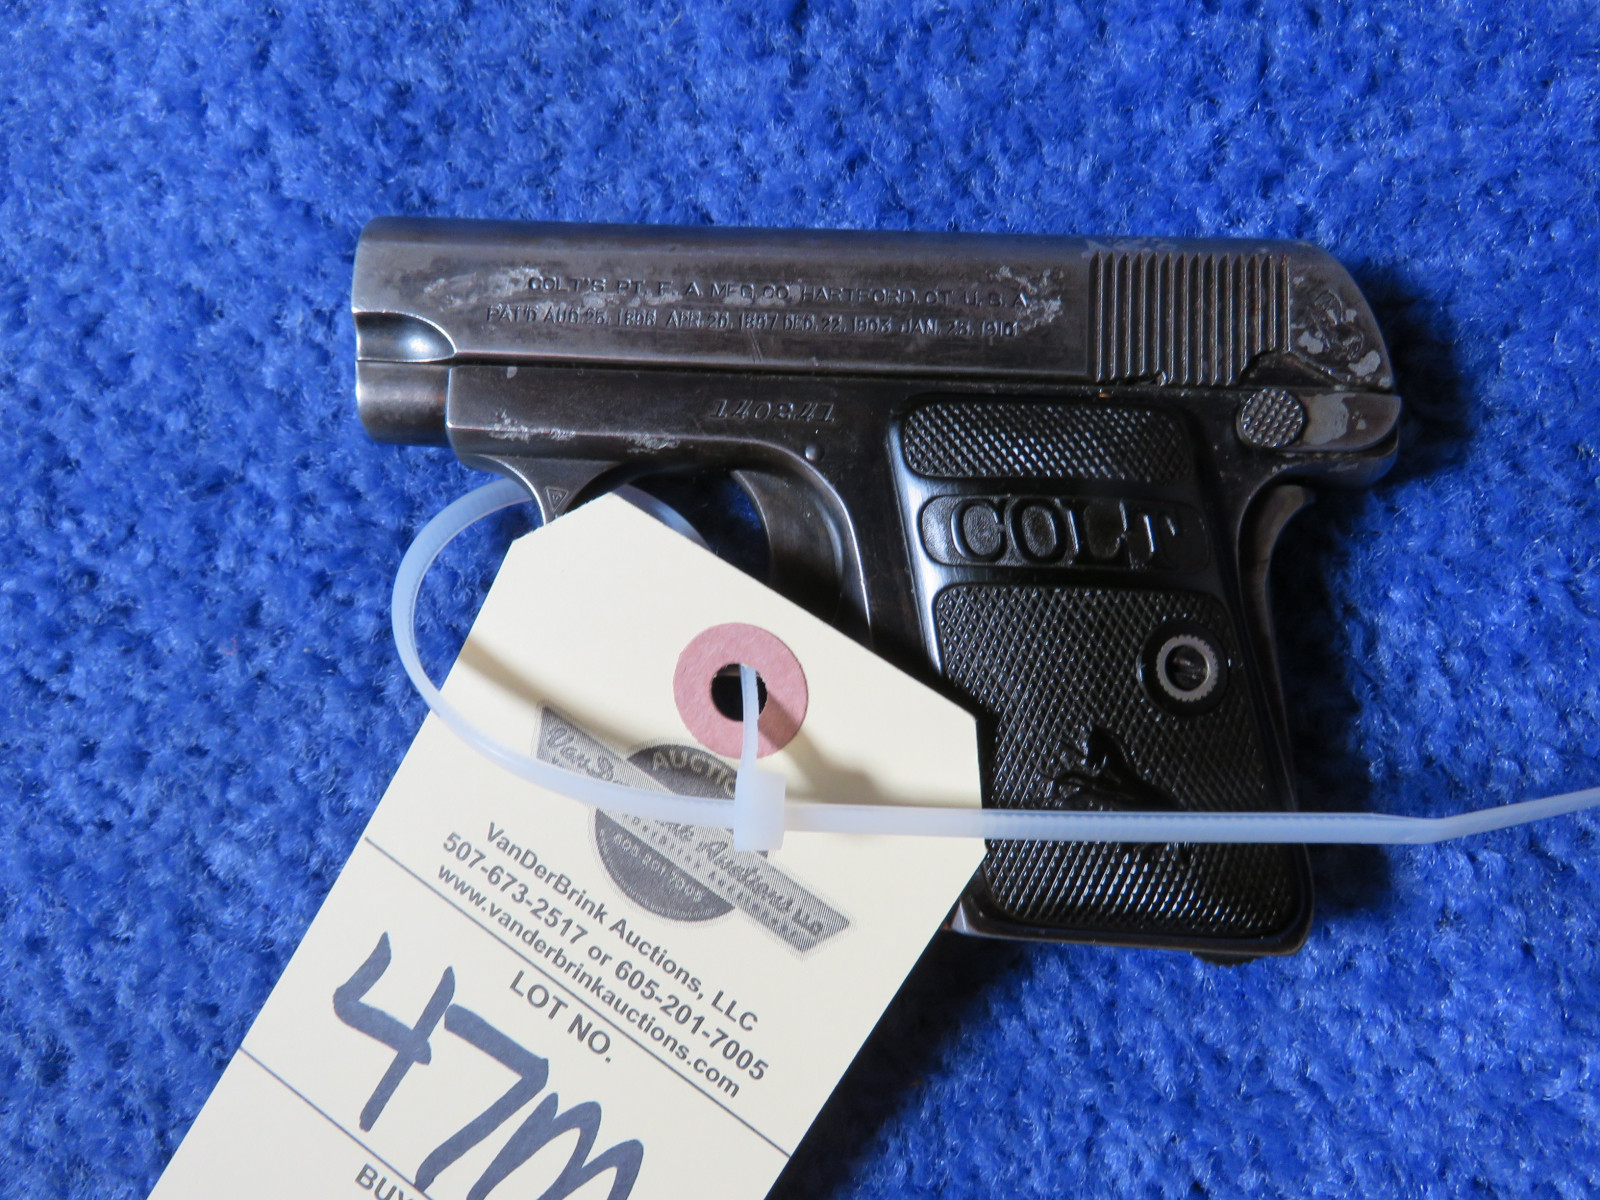 Colt Model 1908 Auto .25 Caliber Vest Pocket Pistol-Handgun - Image 4